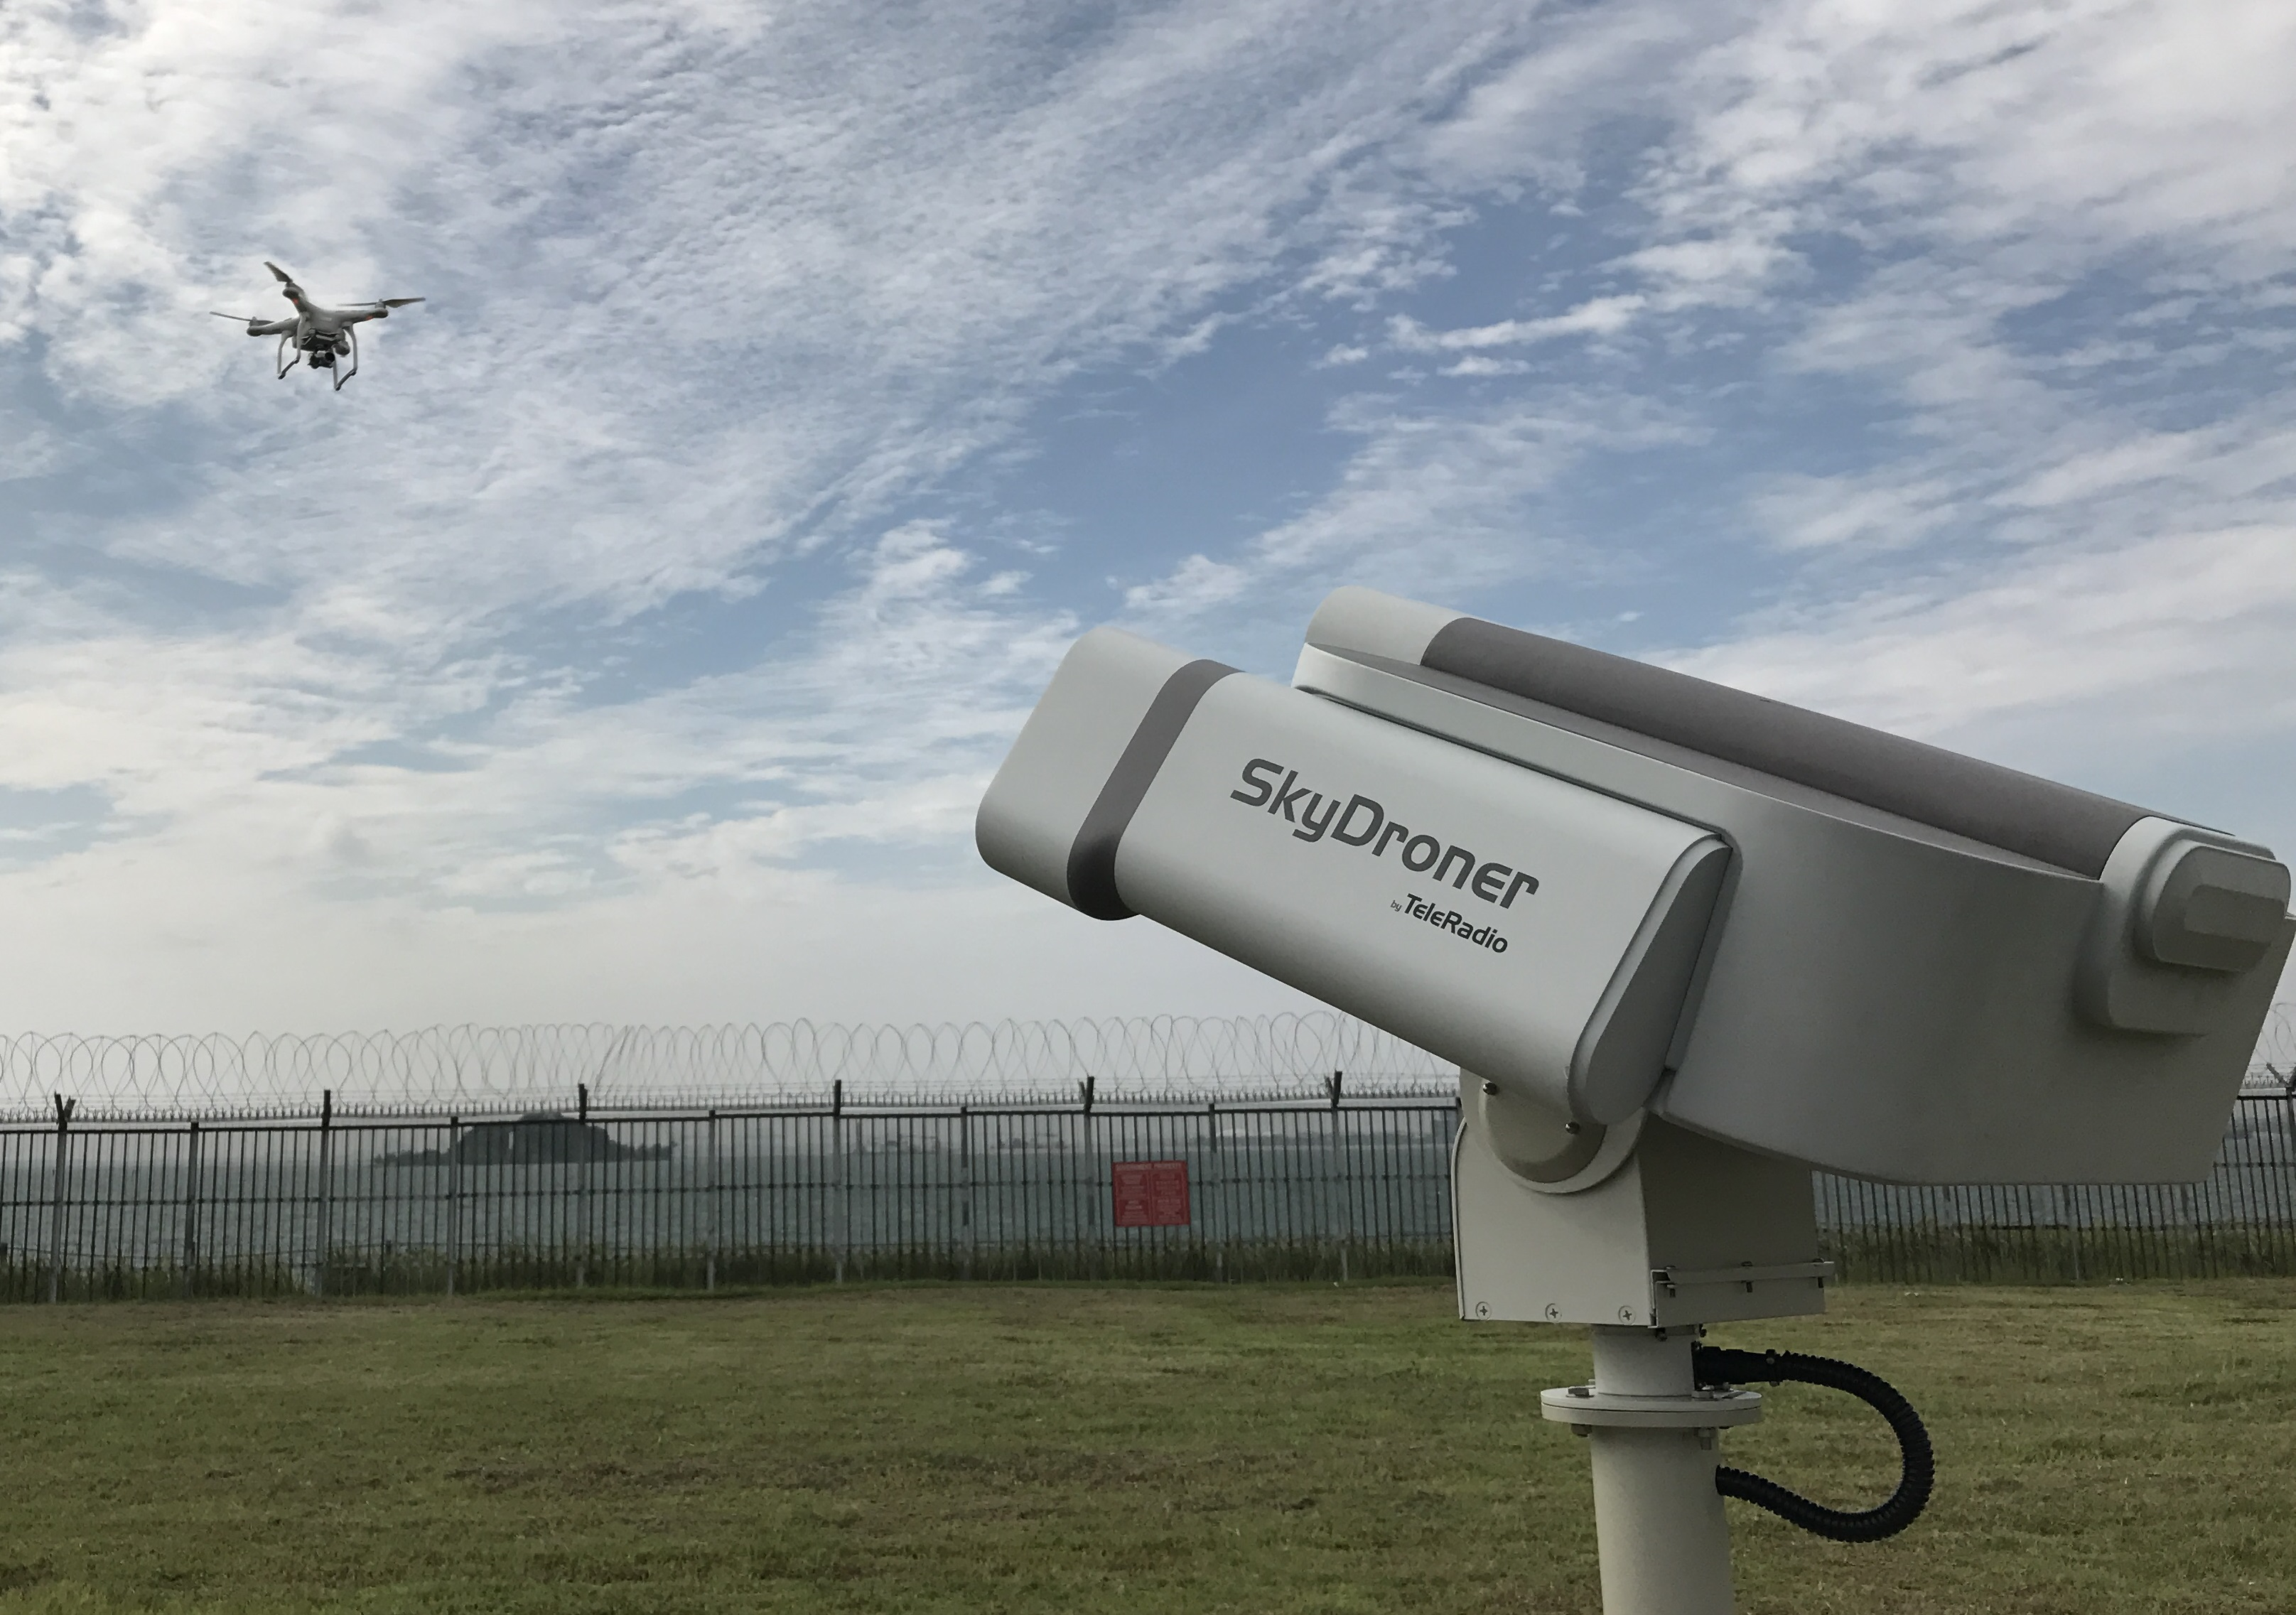 Intersec 2017 – Regional debut among scores of SkyDroner